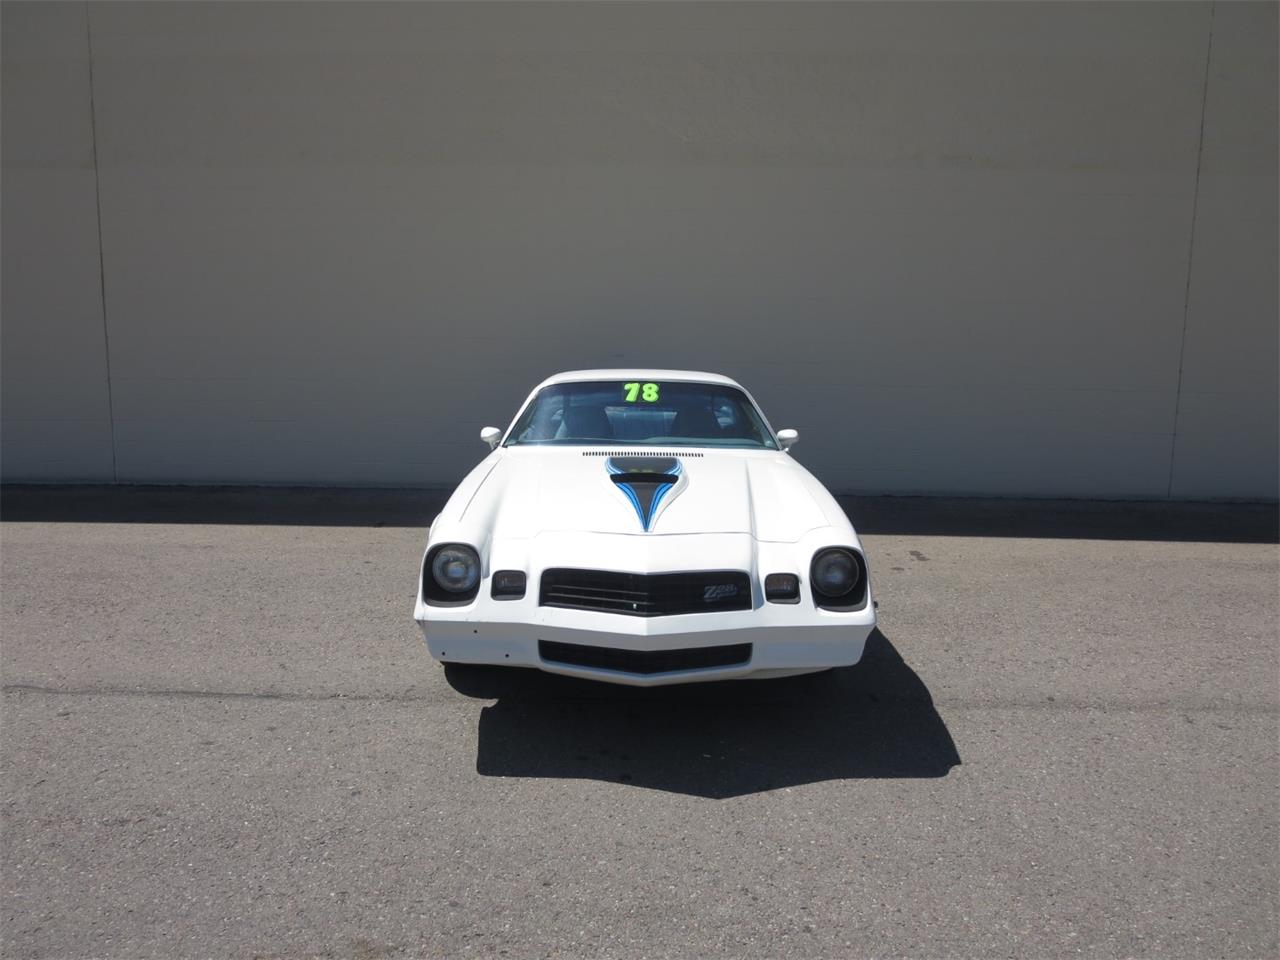 1978 Chevrolet Camaro for sale in Tacoma, WA – photo 2